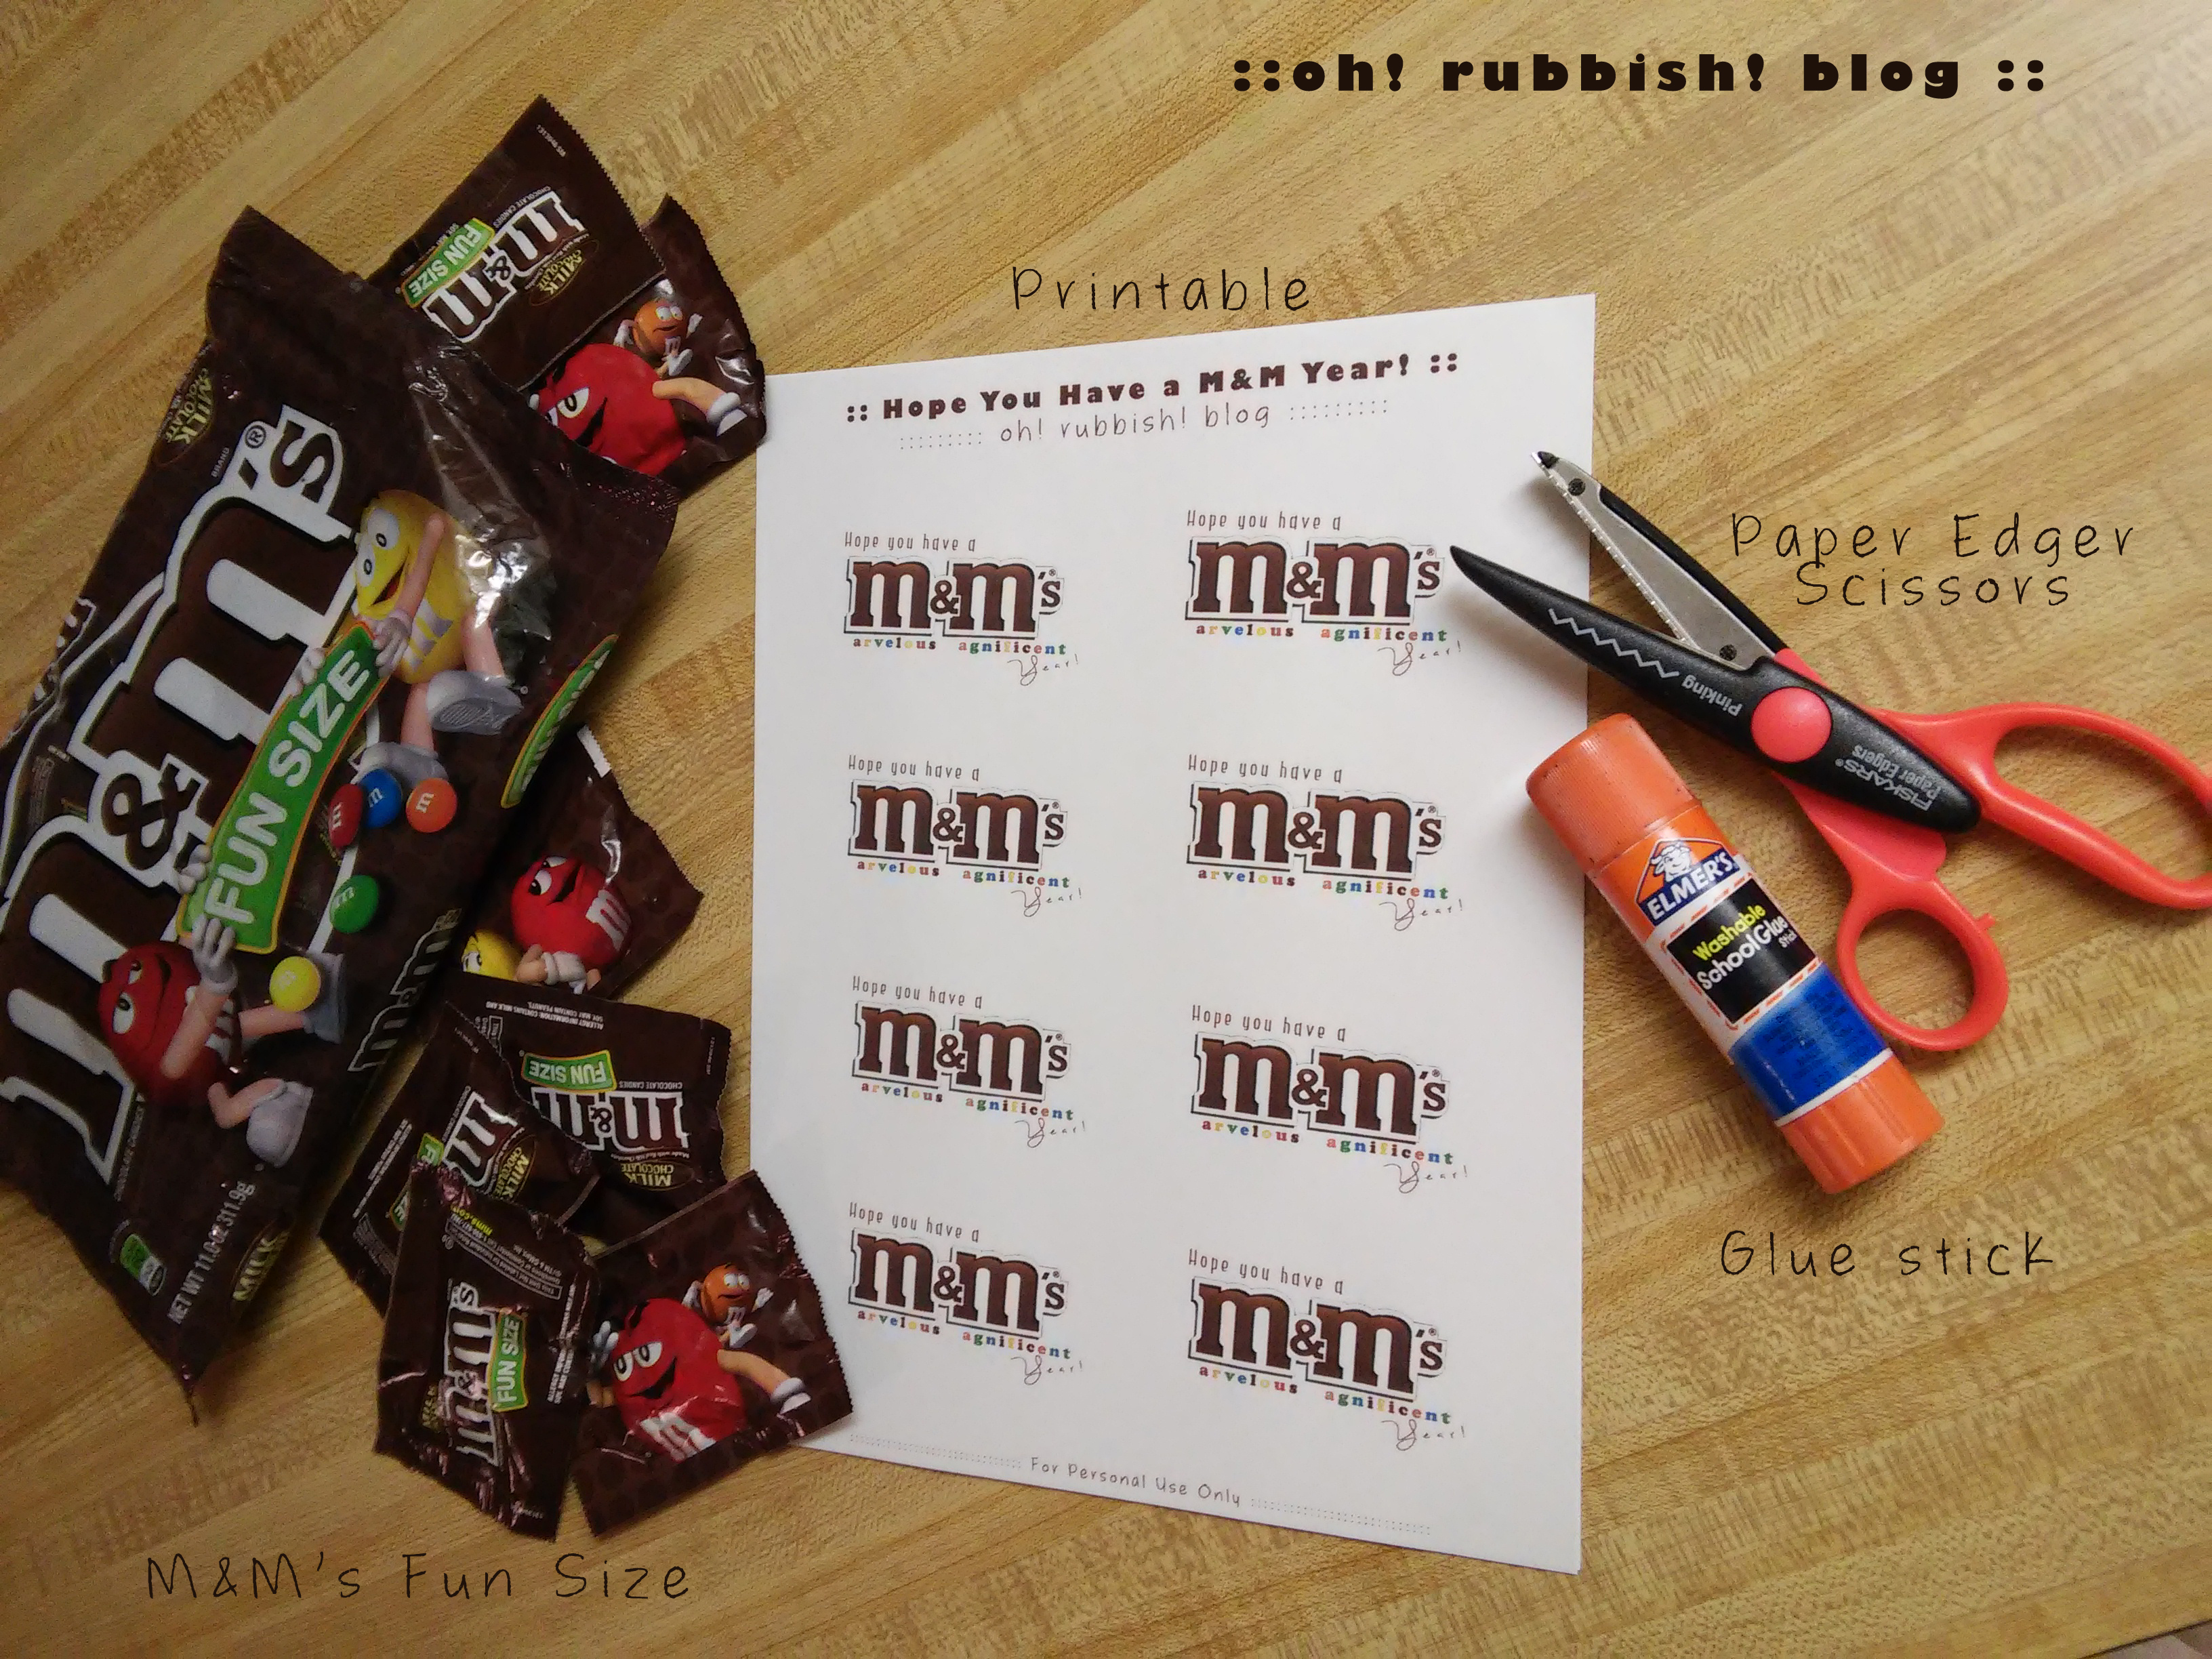 Hope You Have an M&M Year! First Day of School Classroom Favor Treats by: OH RUBBISH BLOG